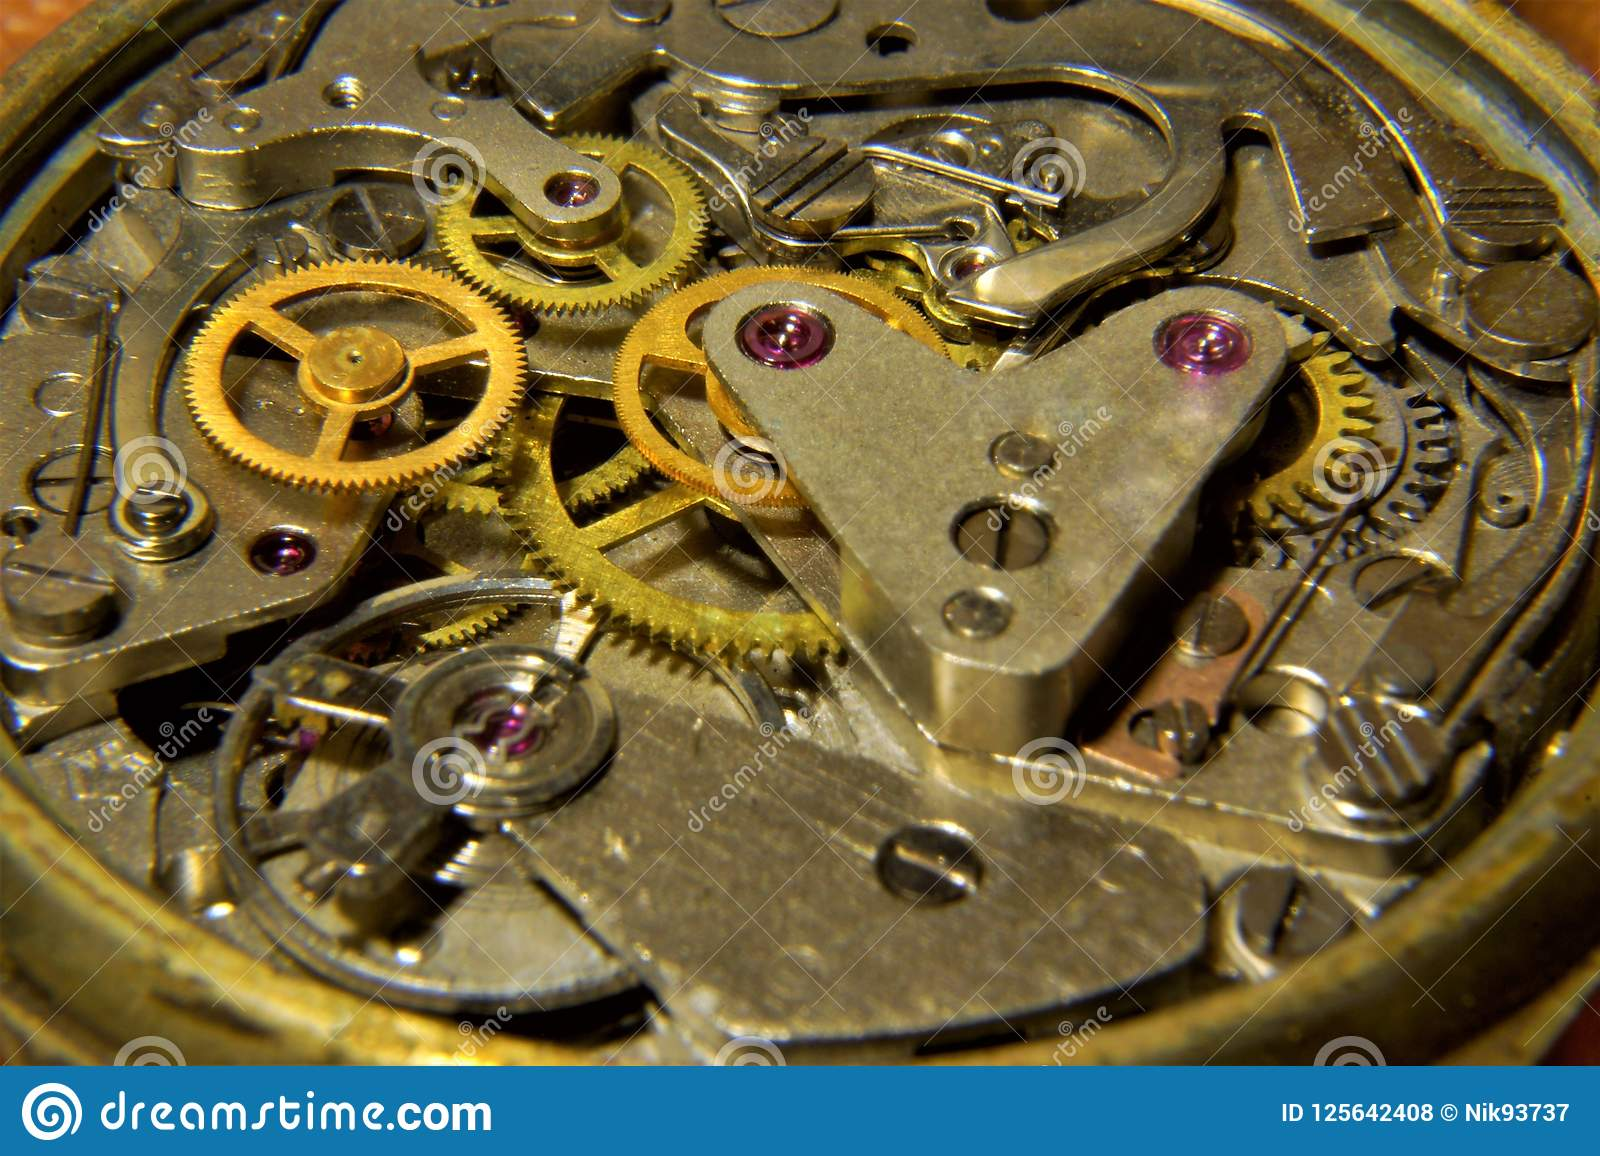 The Clock Shows The Gear Mechanism Time Stock Photo - Image of shows